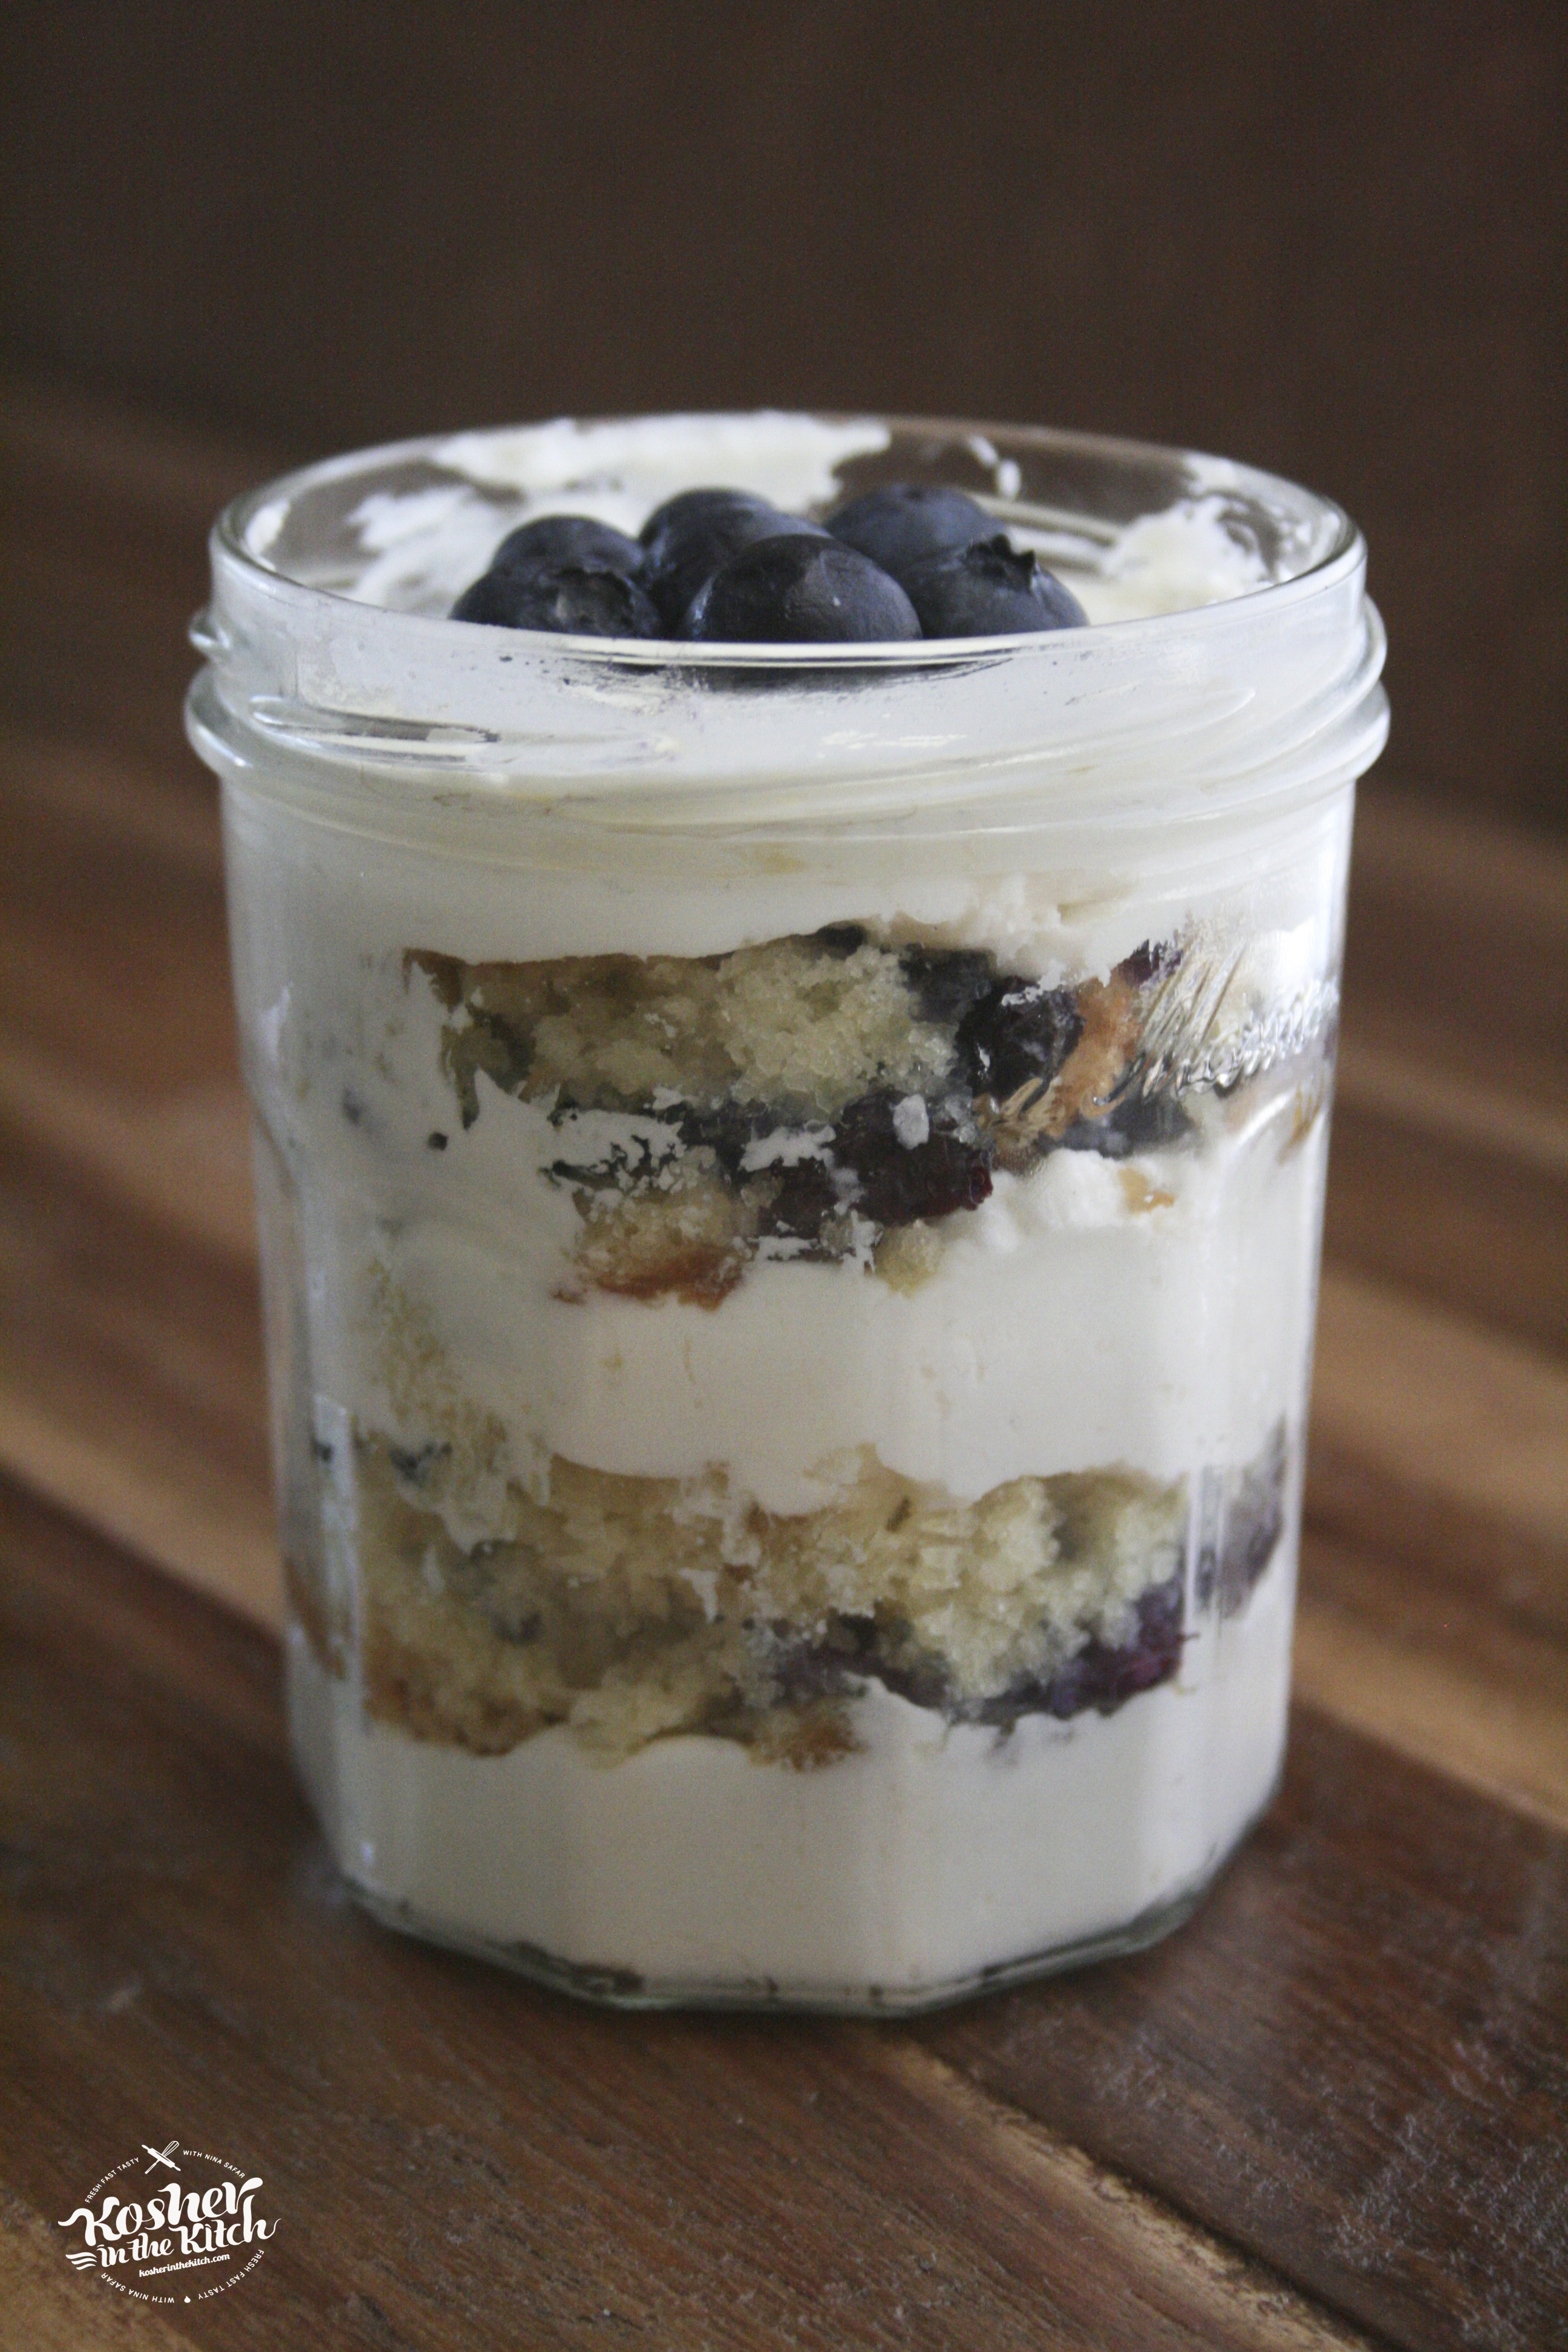 Lemon Blueberry Cake in a Jar